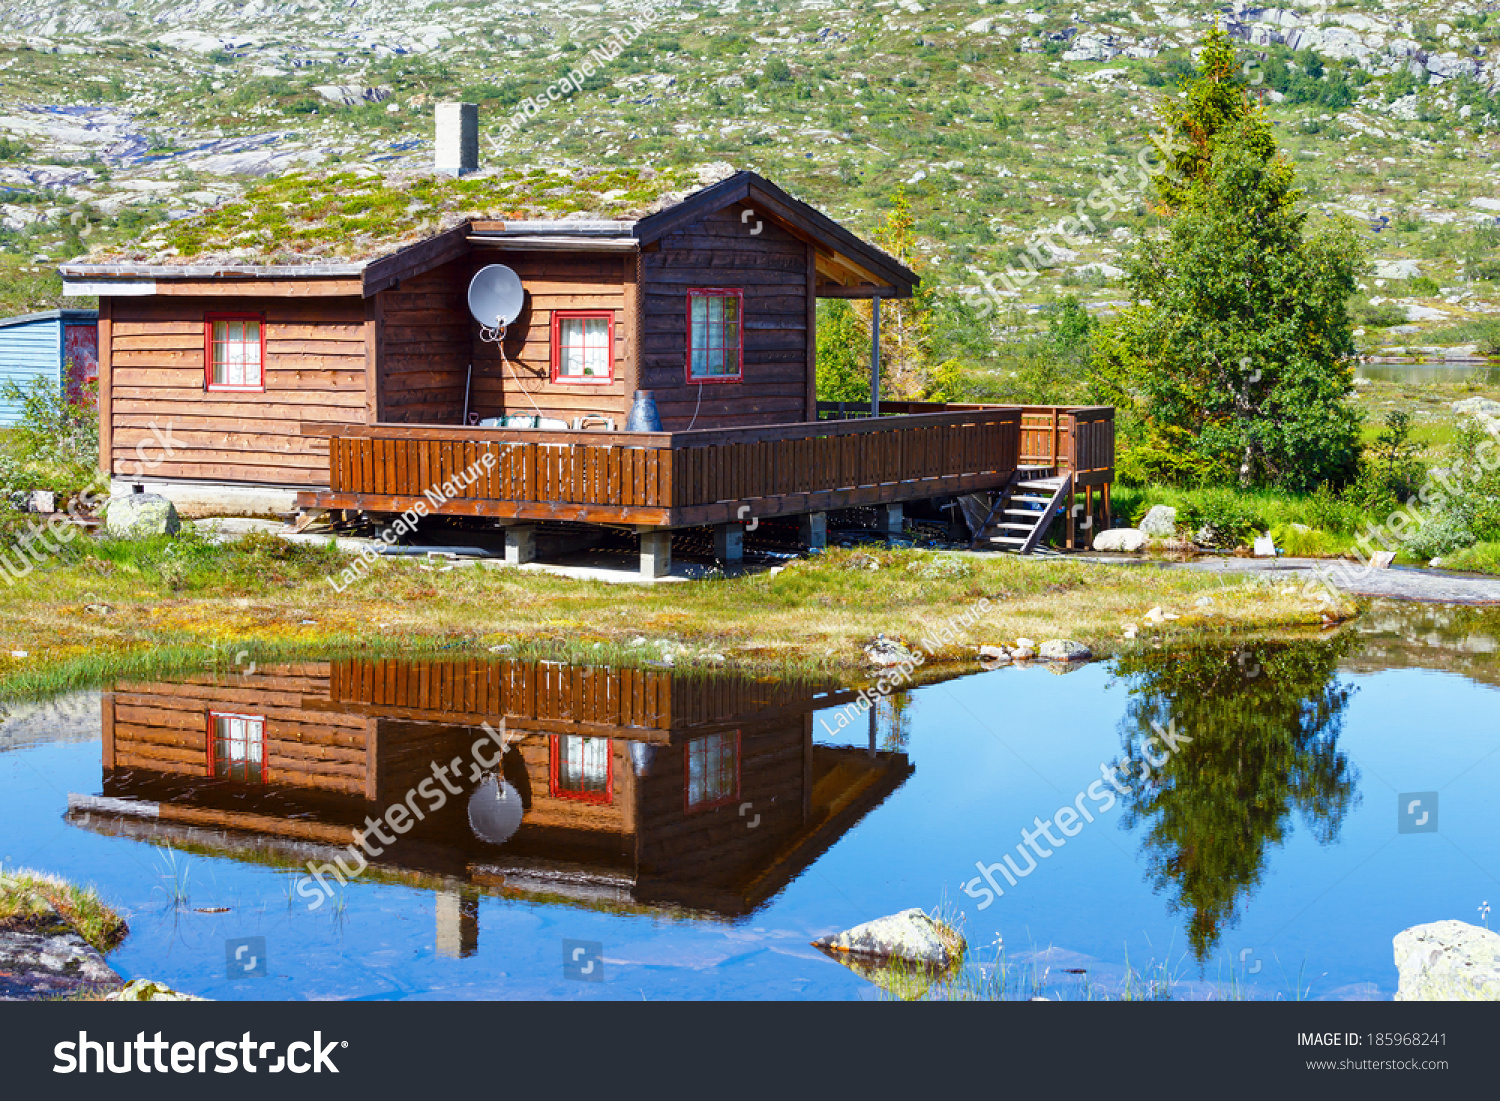 Typical norwegian wooden summer house near stock photo 185968241 shutterstock - Summer houses mountains ...